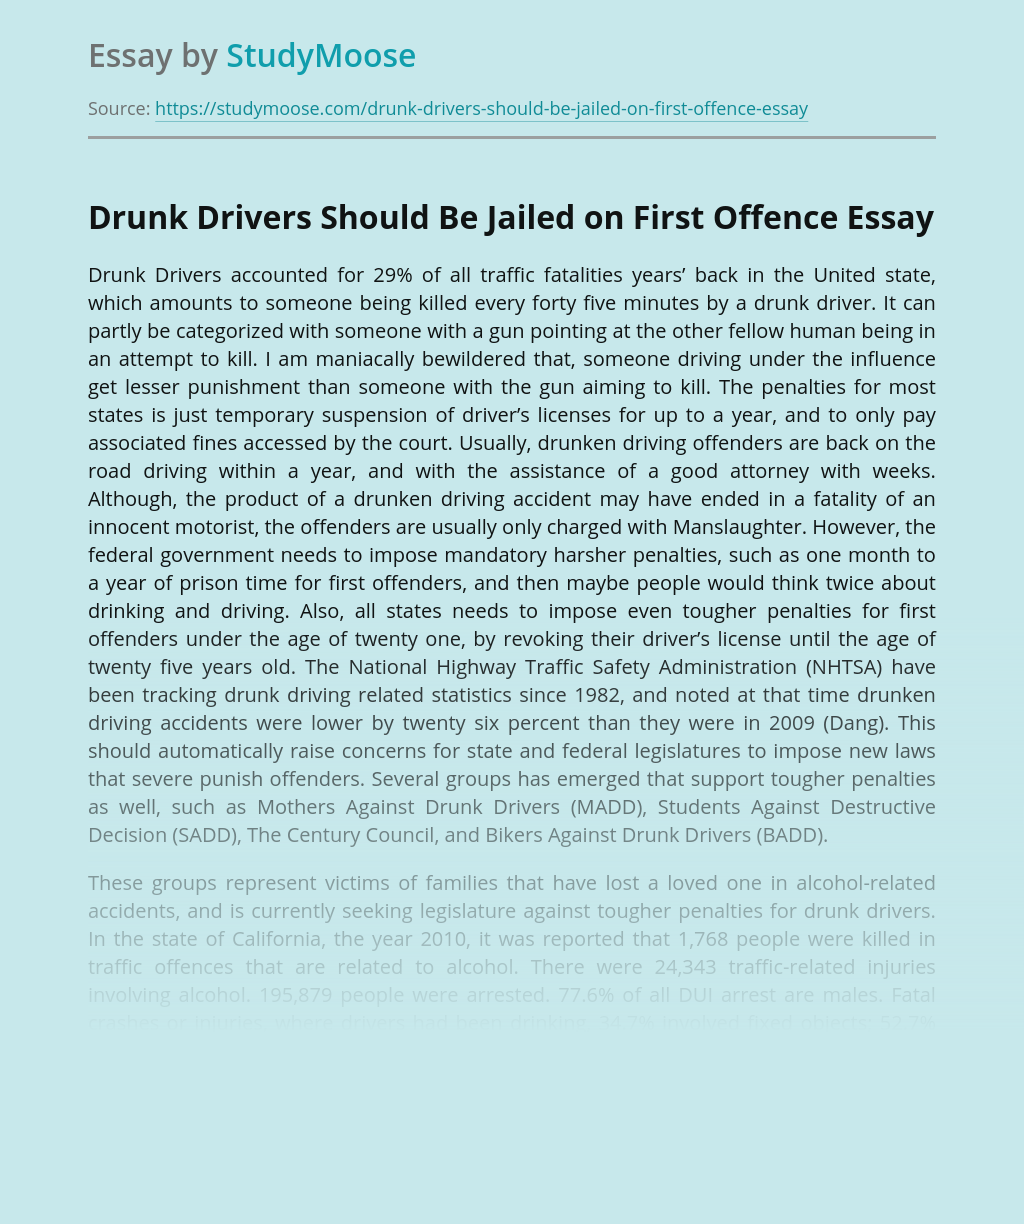 Drunk Drivers Should Be Jailed on First Offence